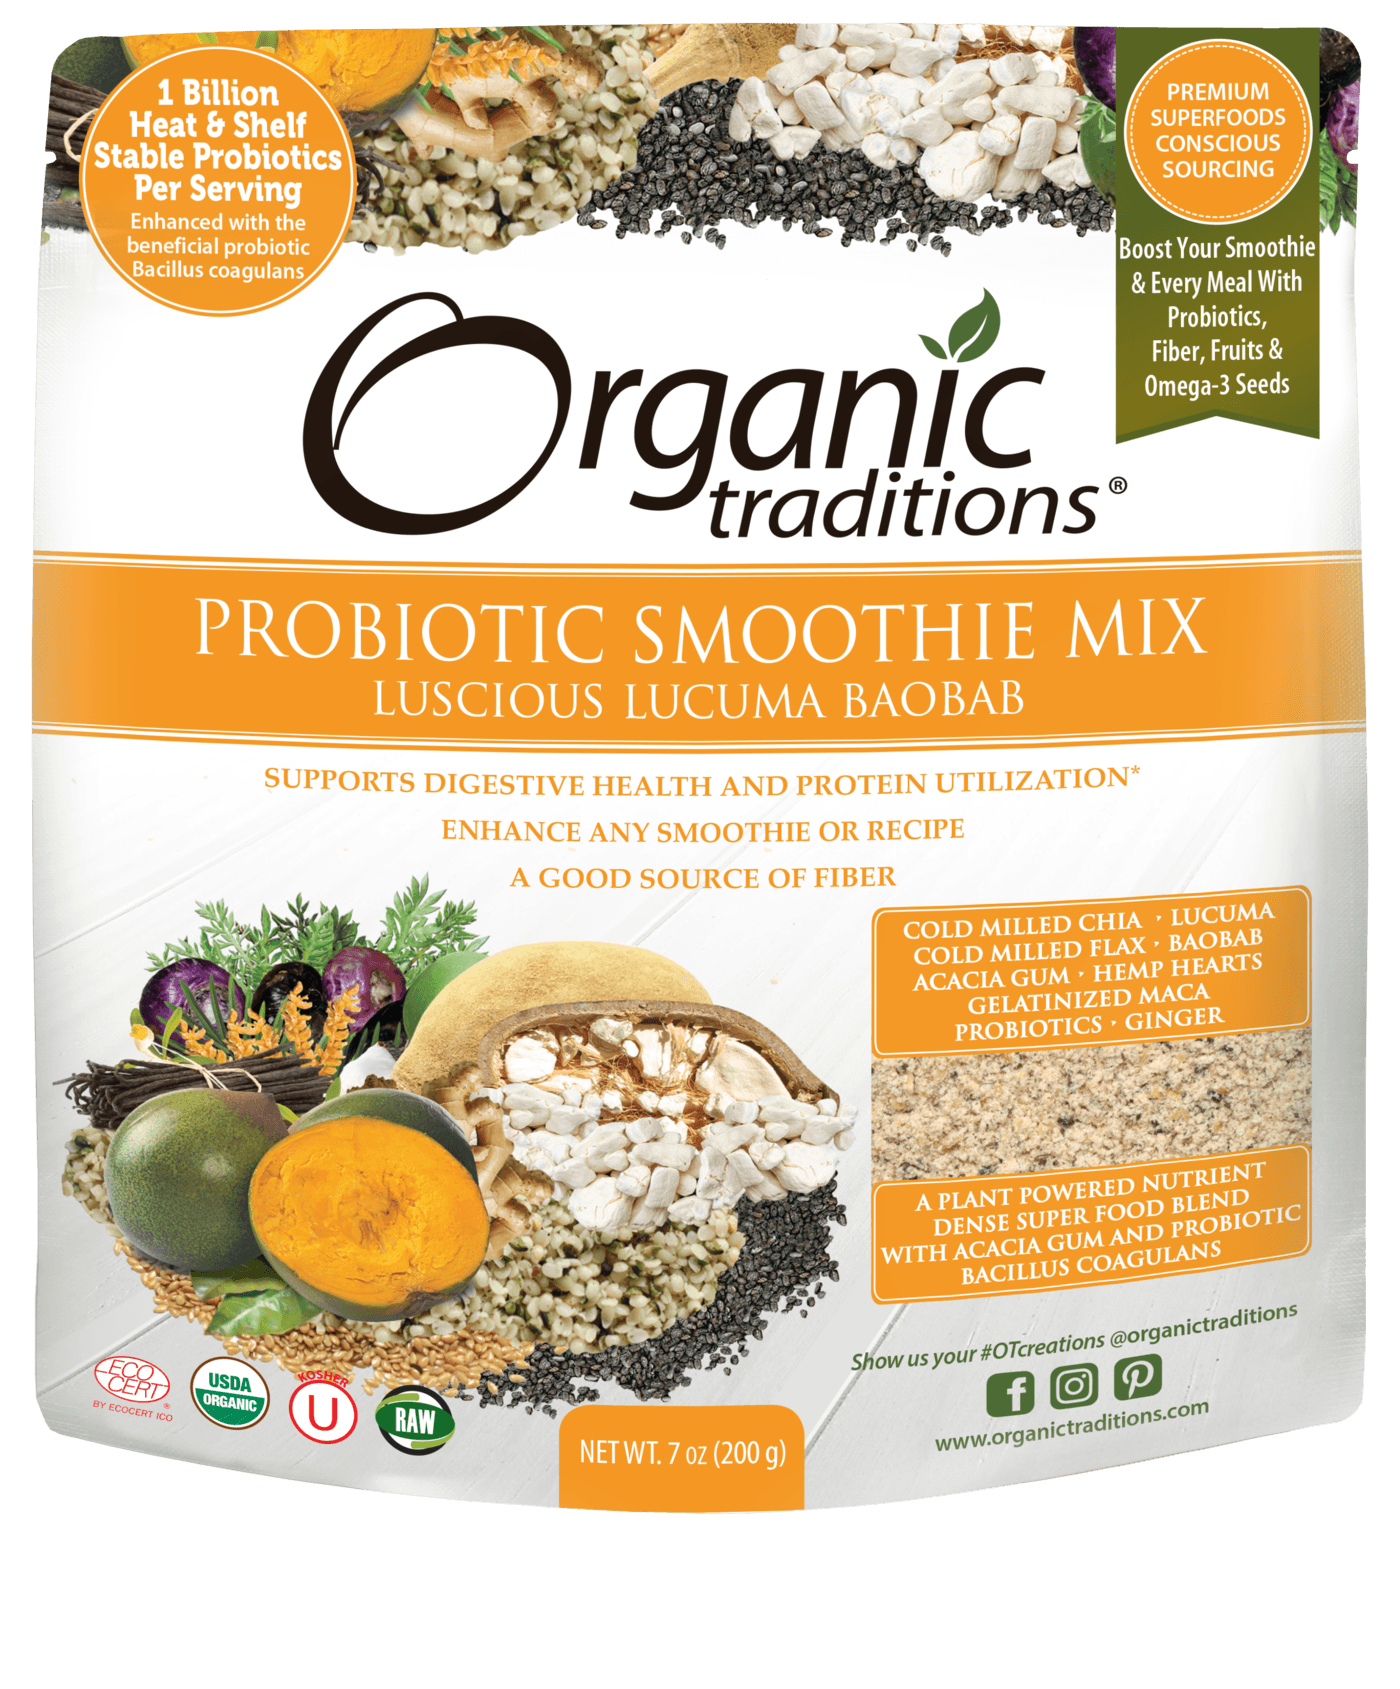 Supplements - Organic Traditions - Probiotic Smoothie Mix (Luscious Lucuma Baobab), 200g